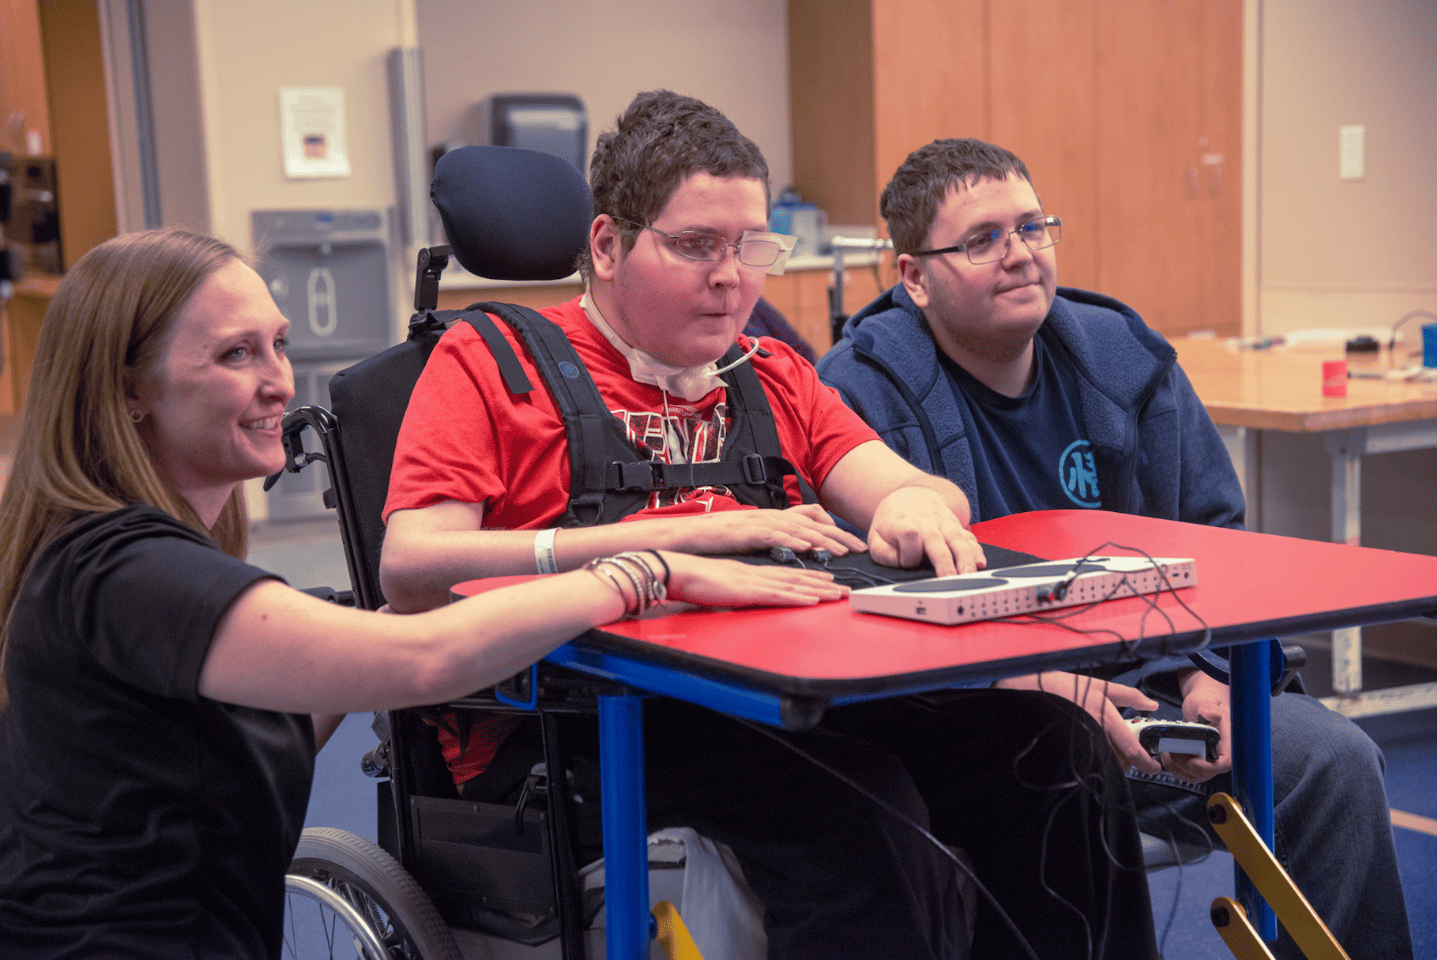 A patient with cerebral palsy plays a game using the Xbox Adaptive Controller